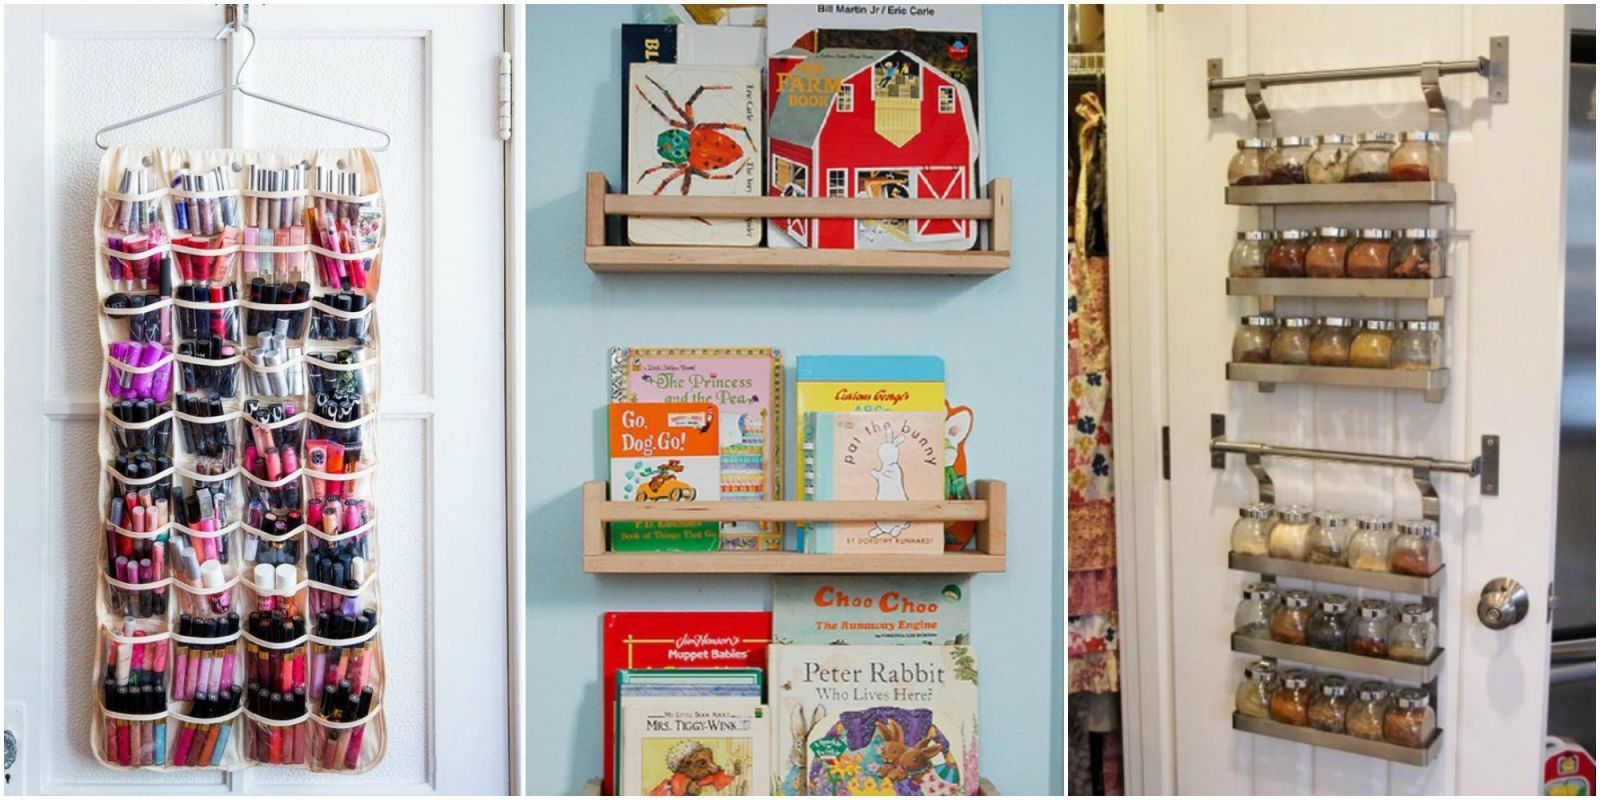 Youu0027re missing out on a ton of hidden space! & Closet Door Storage Ideas - New Uses for Closet Doors